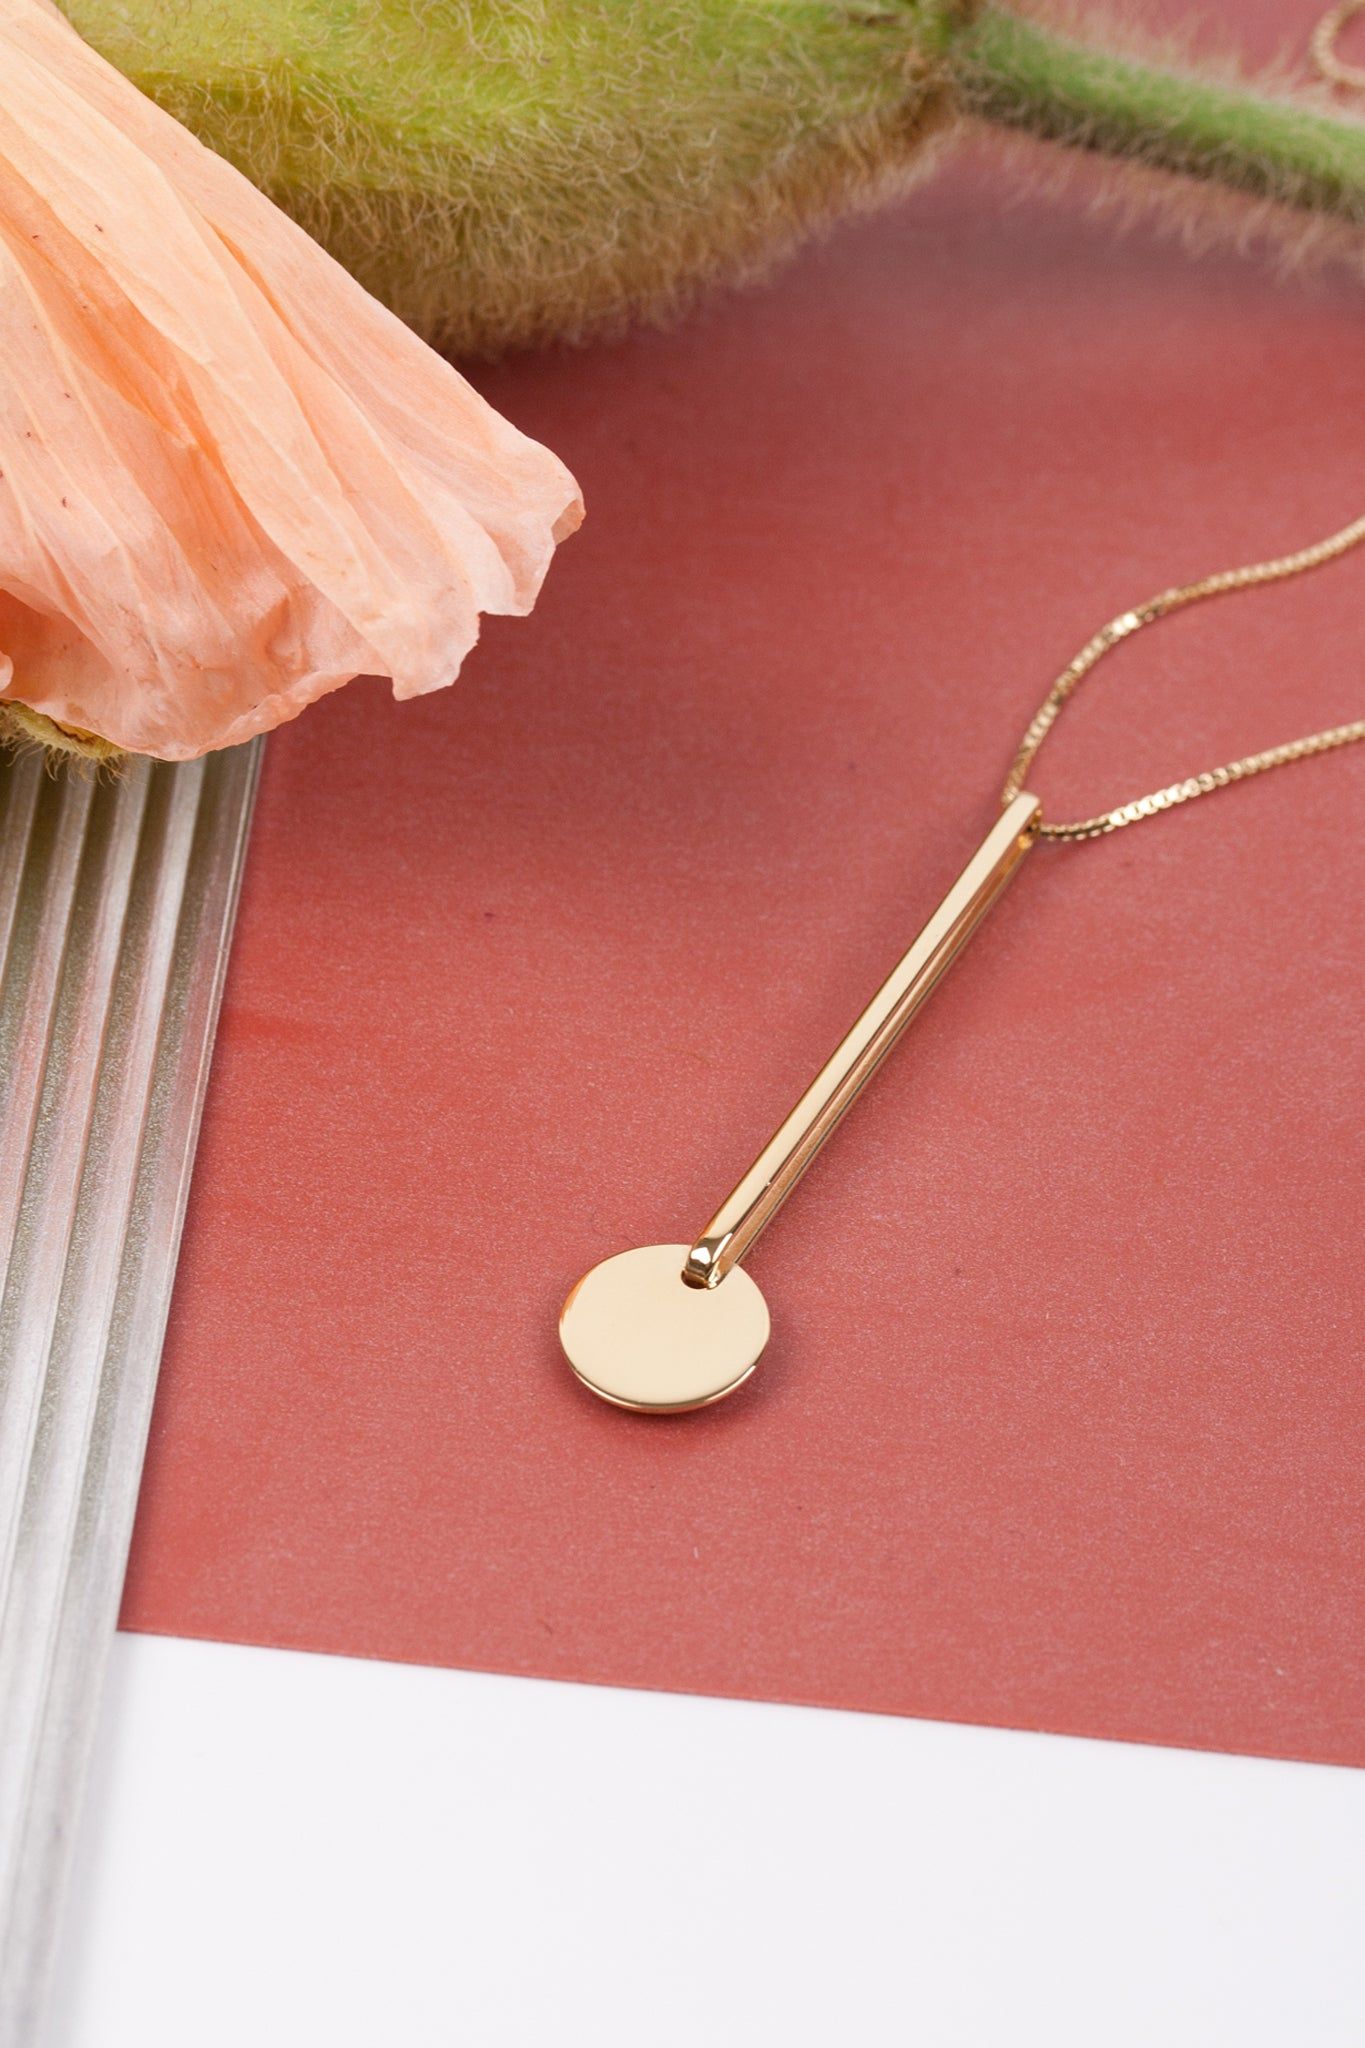 PENDUL NECKLACE